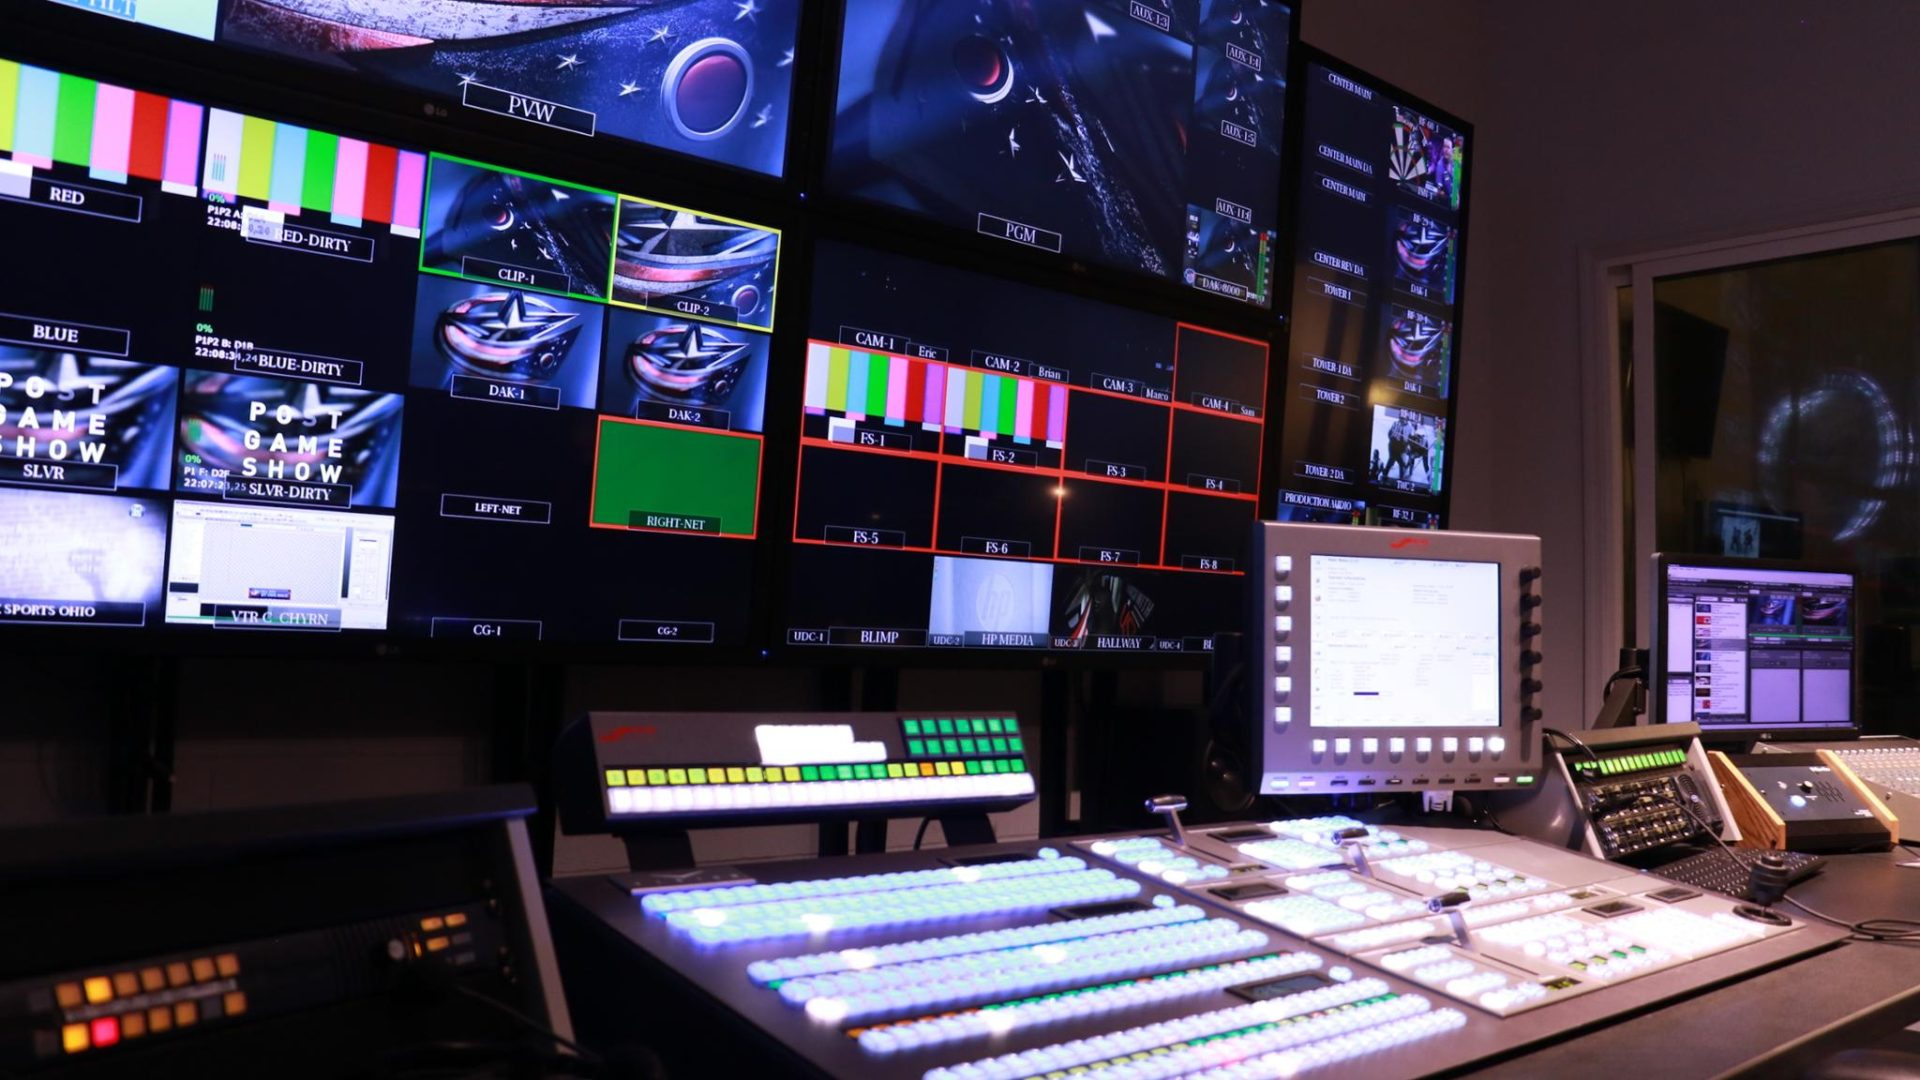 GET PROFESSIONAL Audio Visual PRODUCTIONS by Expert Engineers